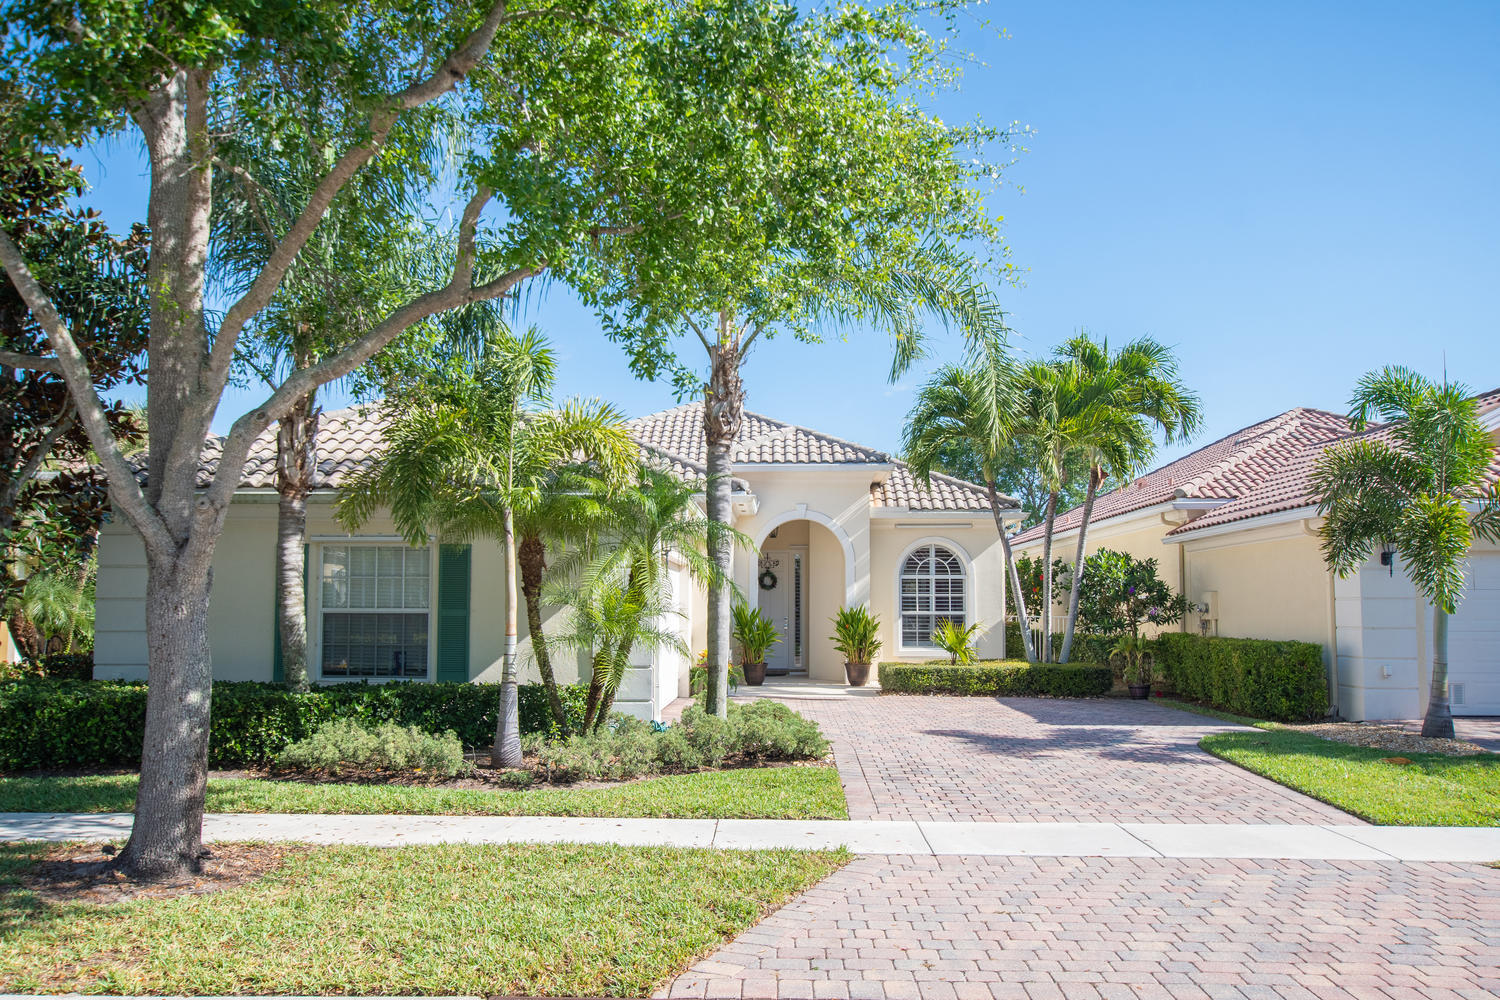 8139 Nevis Place, Wellington, Florida 33414, 3 Bedrooms Bedrooms, ,3 BathroomsBathrooms,Single Family,For Sale,VillageWalk,Nevis,RX-10517827